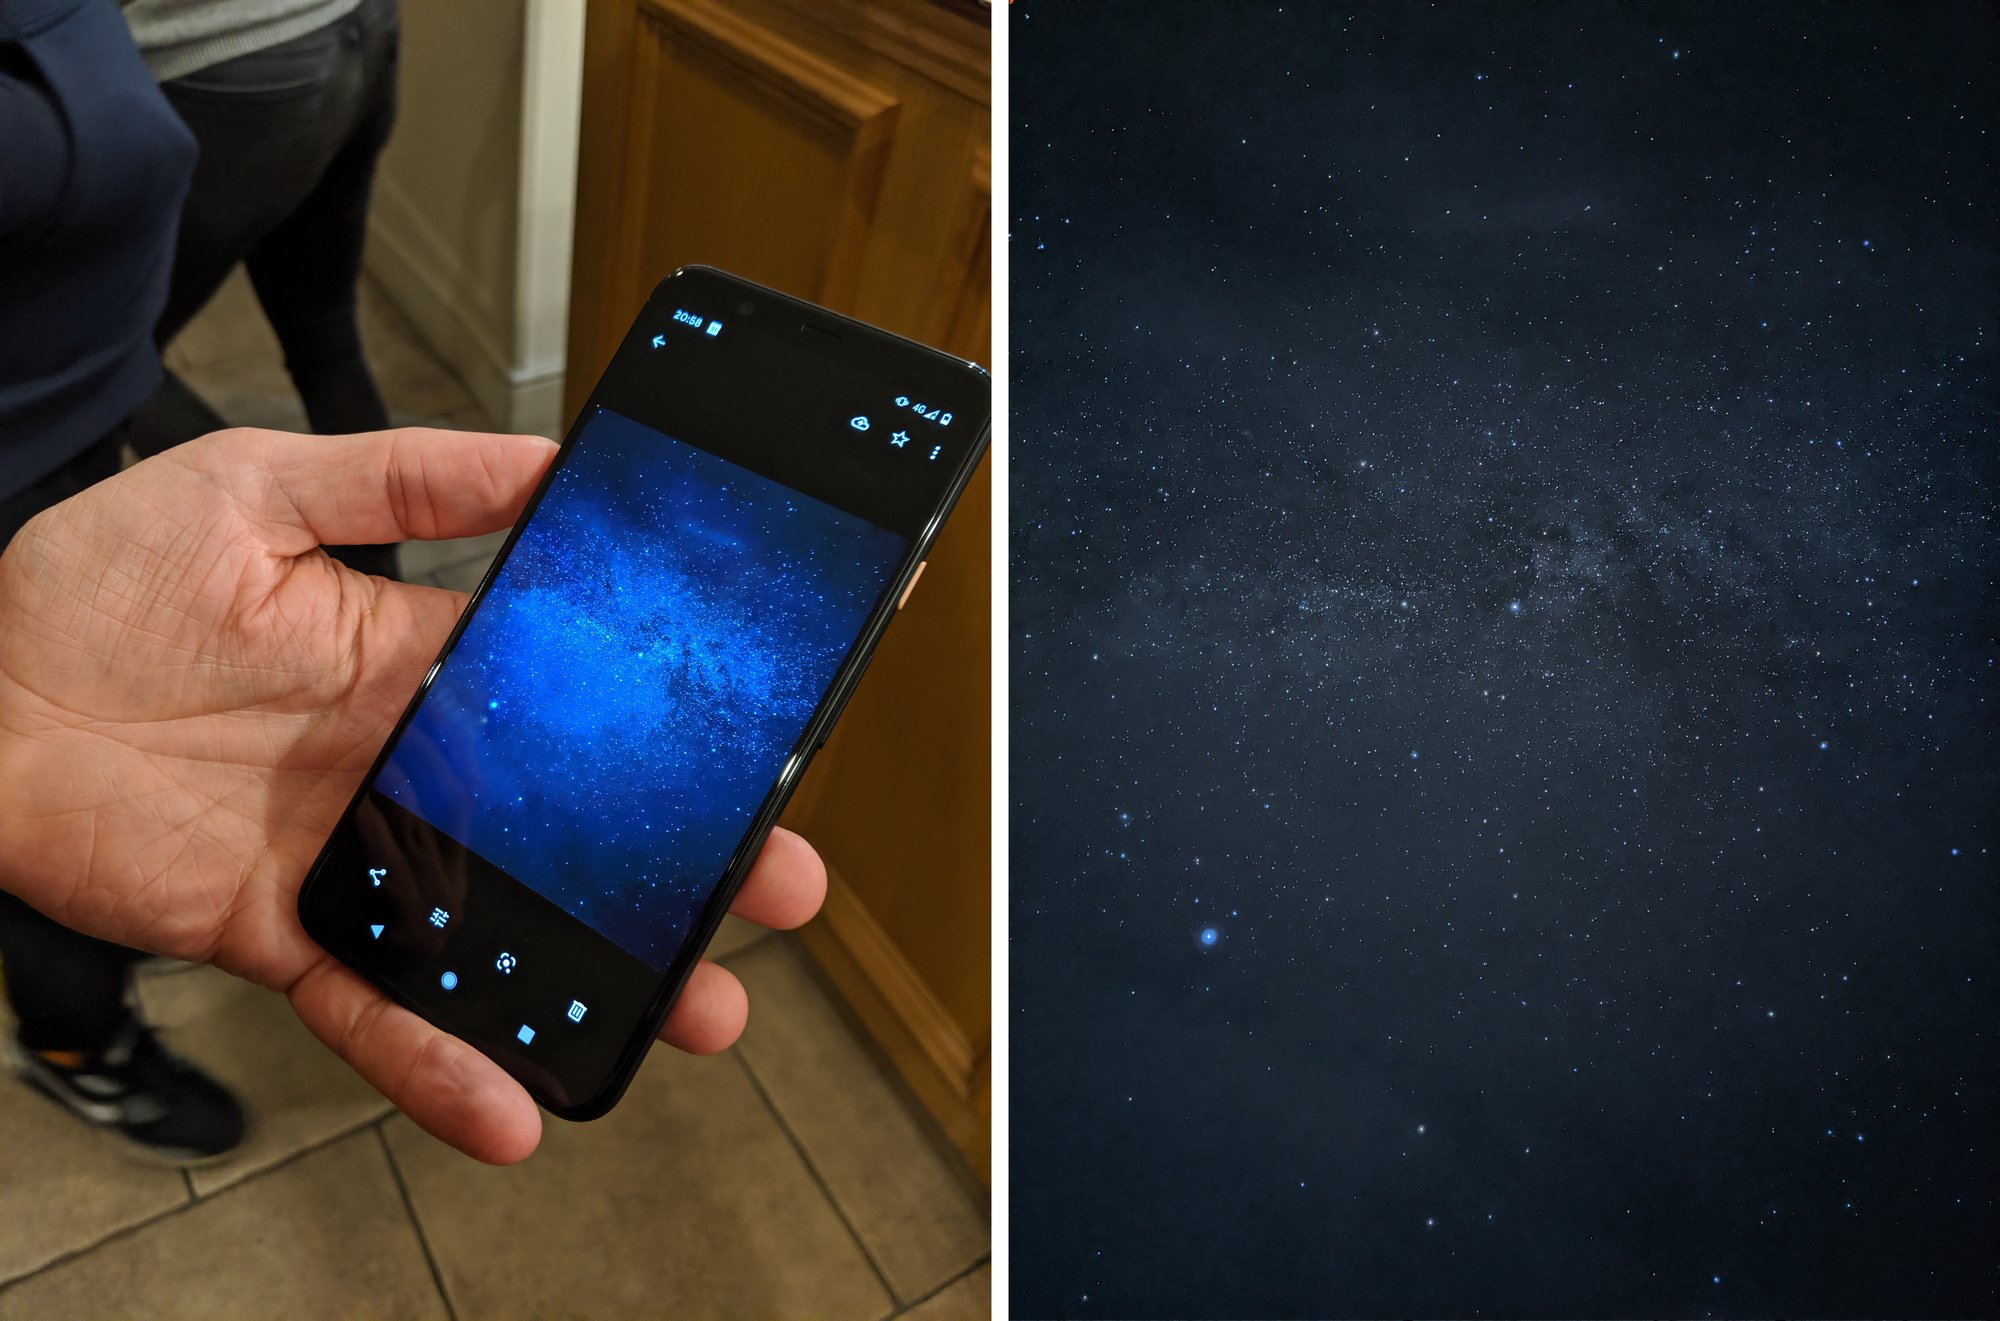 Closer to the stars with Pixel 4